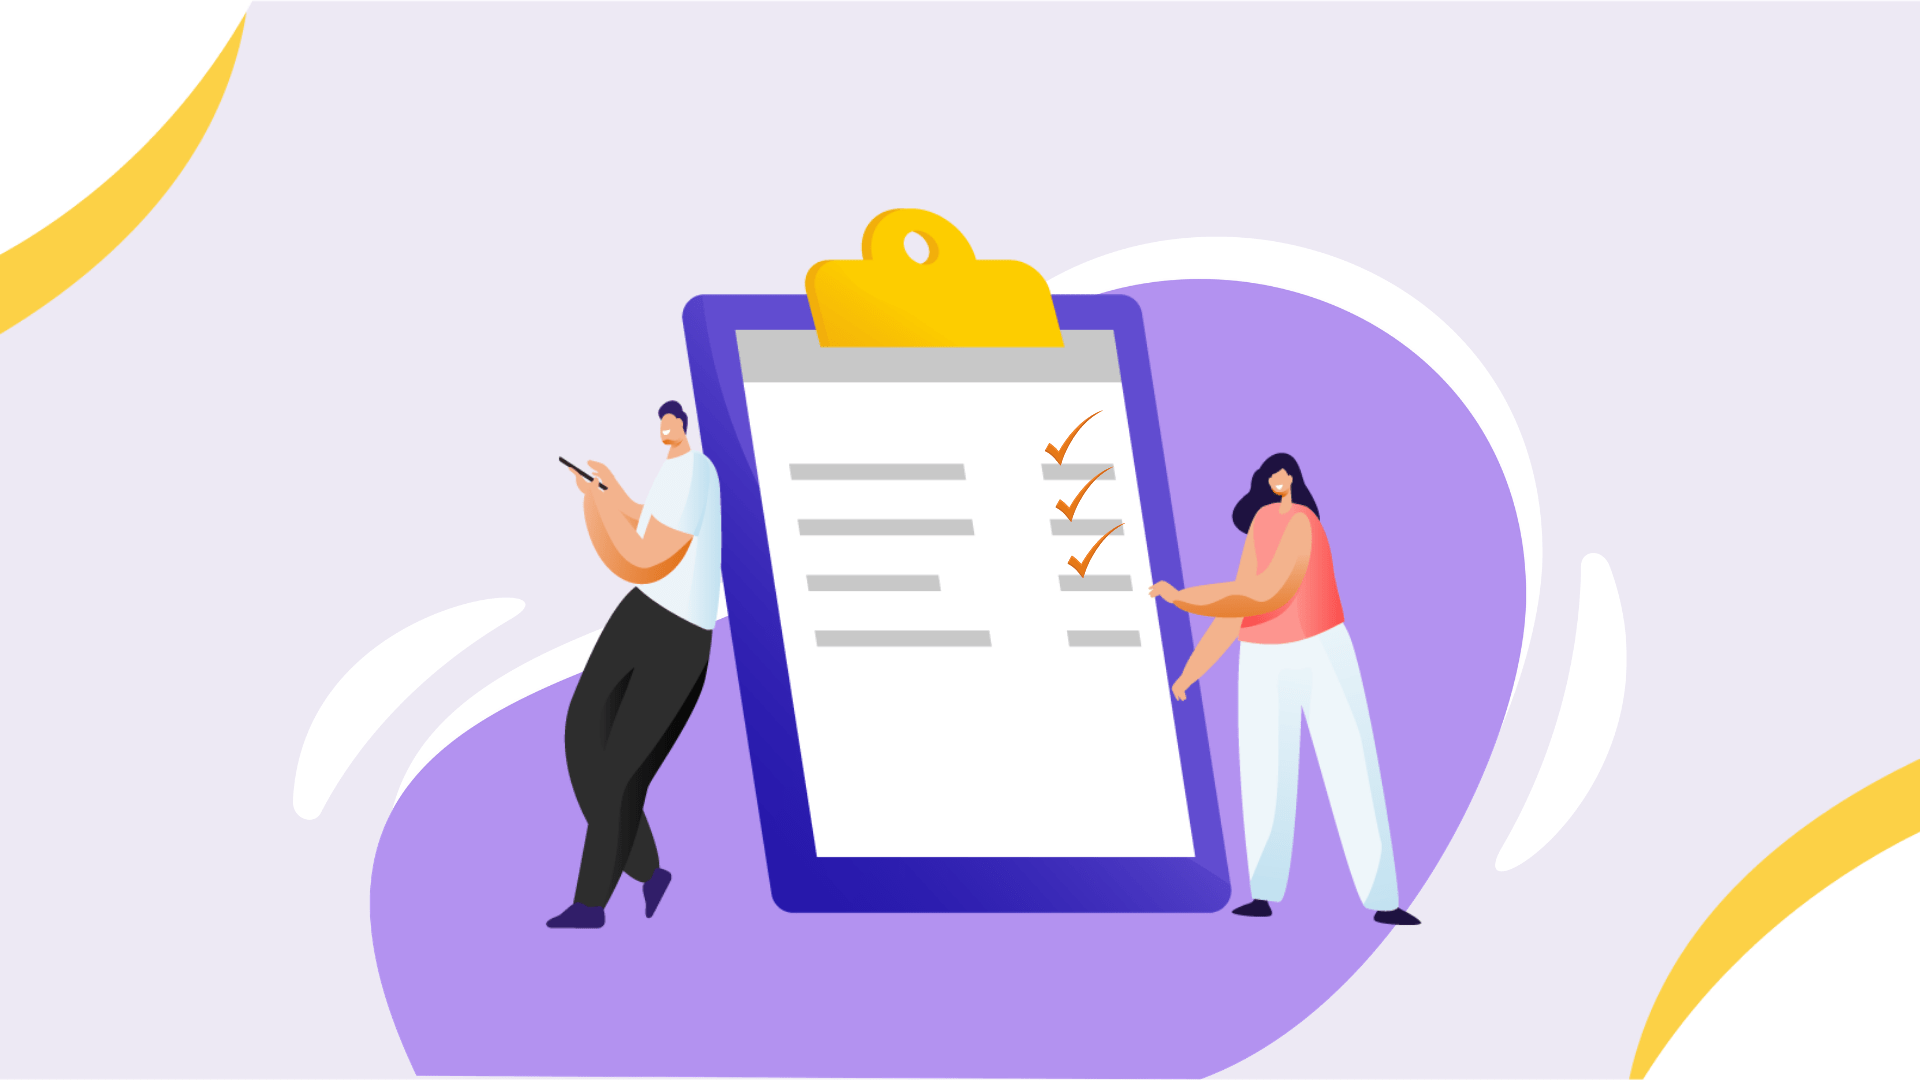 Project Manager's Checklist for Successful Jira Backlog Grooming